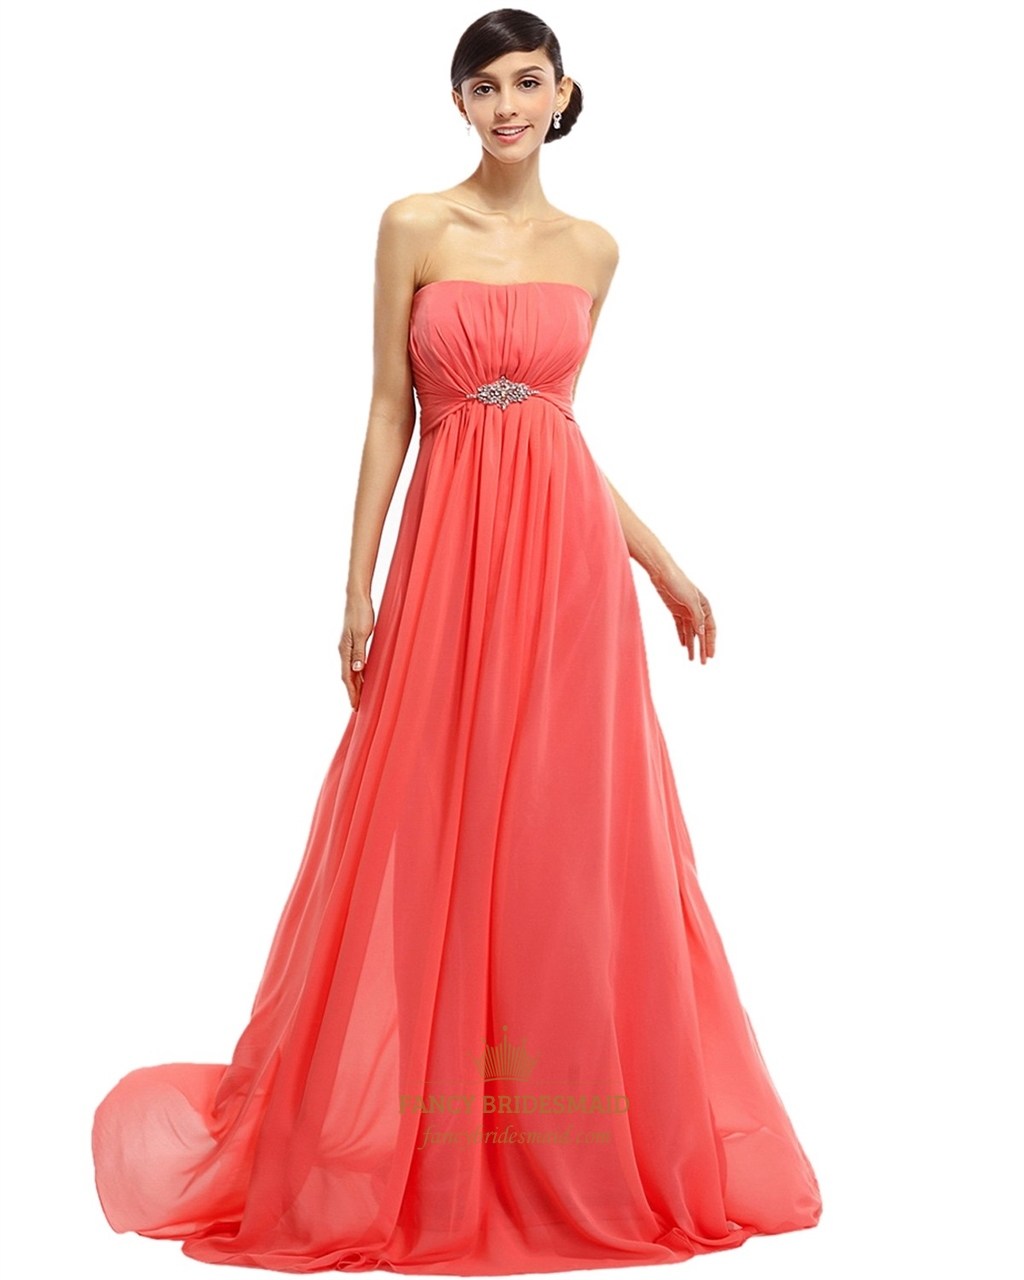 Coral Wedding Gowns: Coral Chiffon Strapless Empire Bridesmaid Dresses With